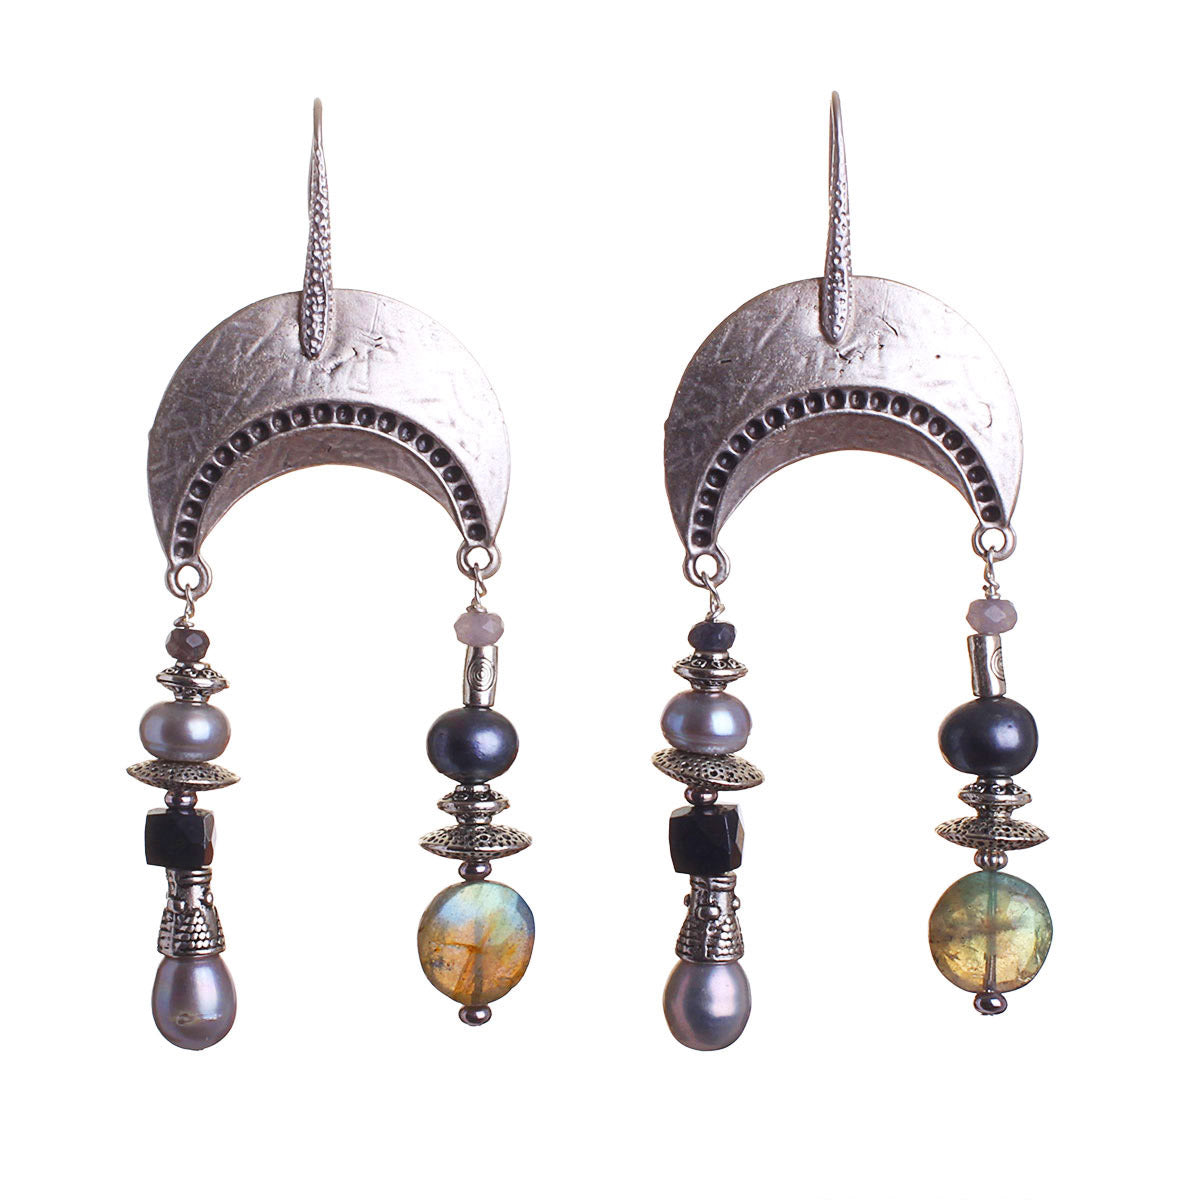 N°544 The Radiant Labradorite Thief Statement Earrings